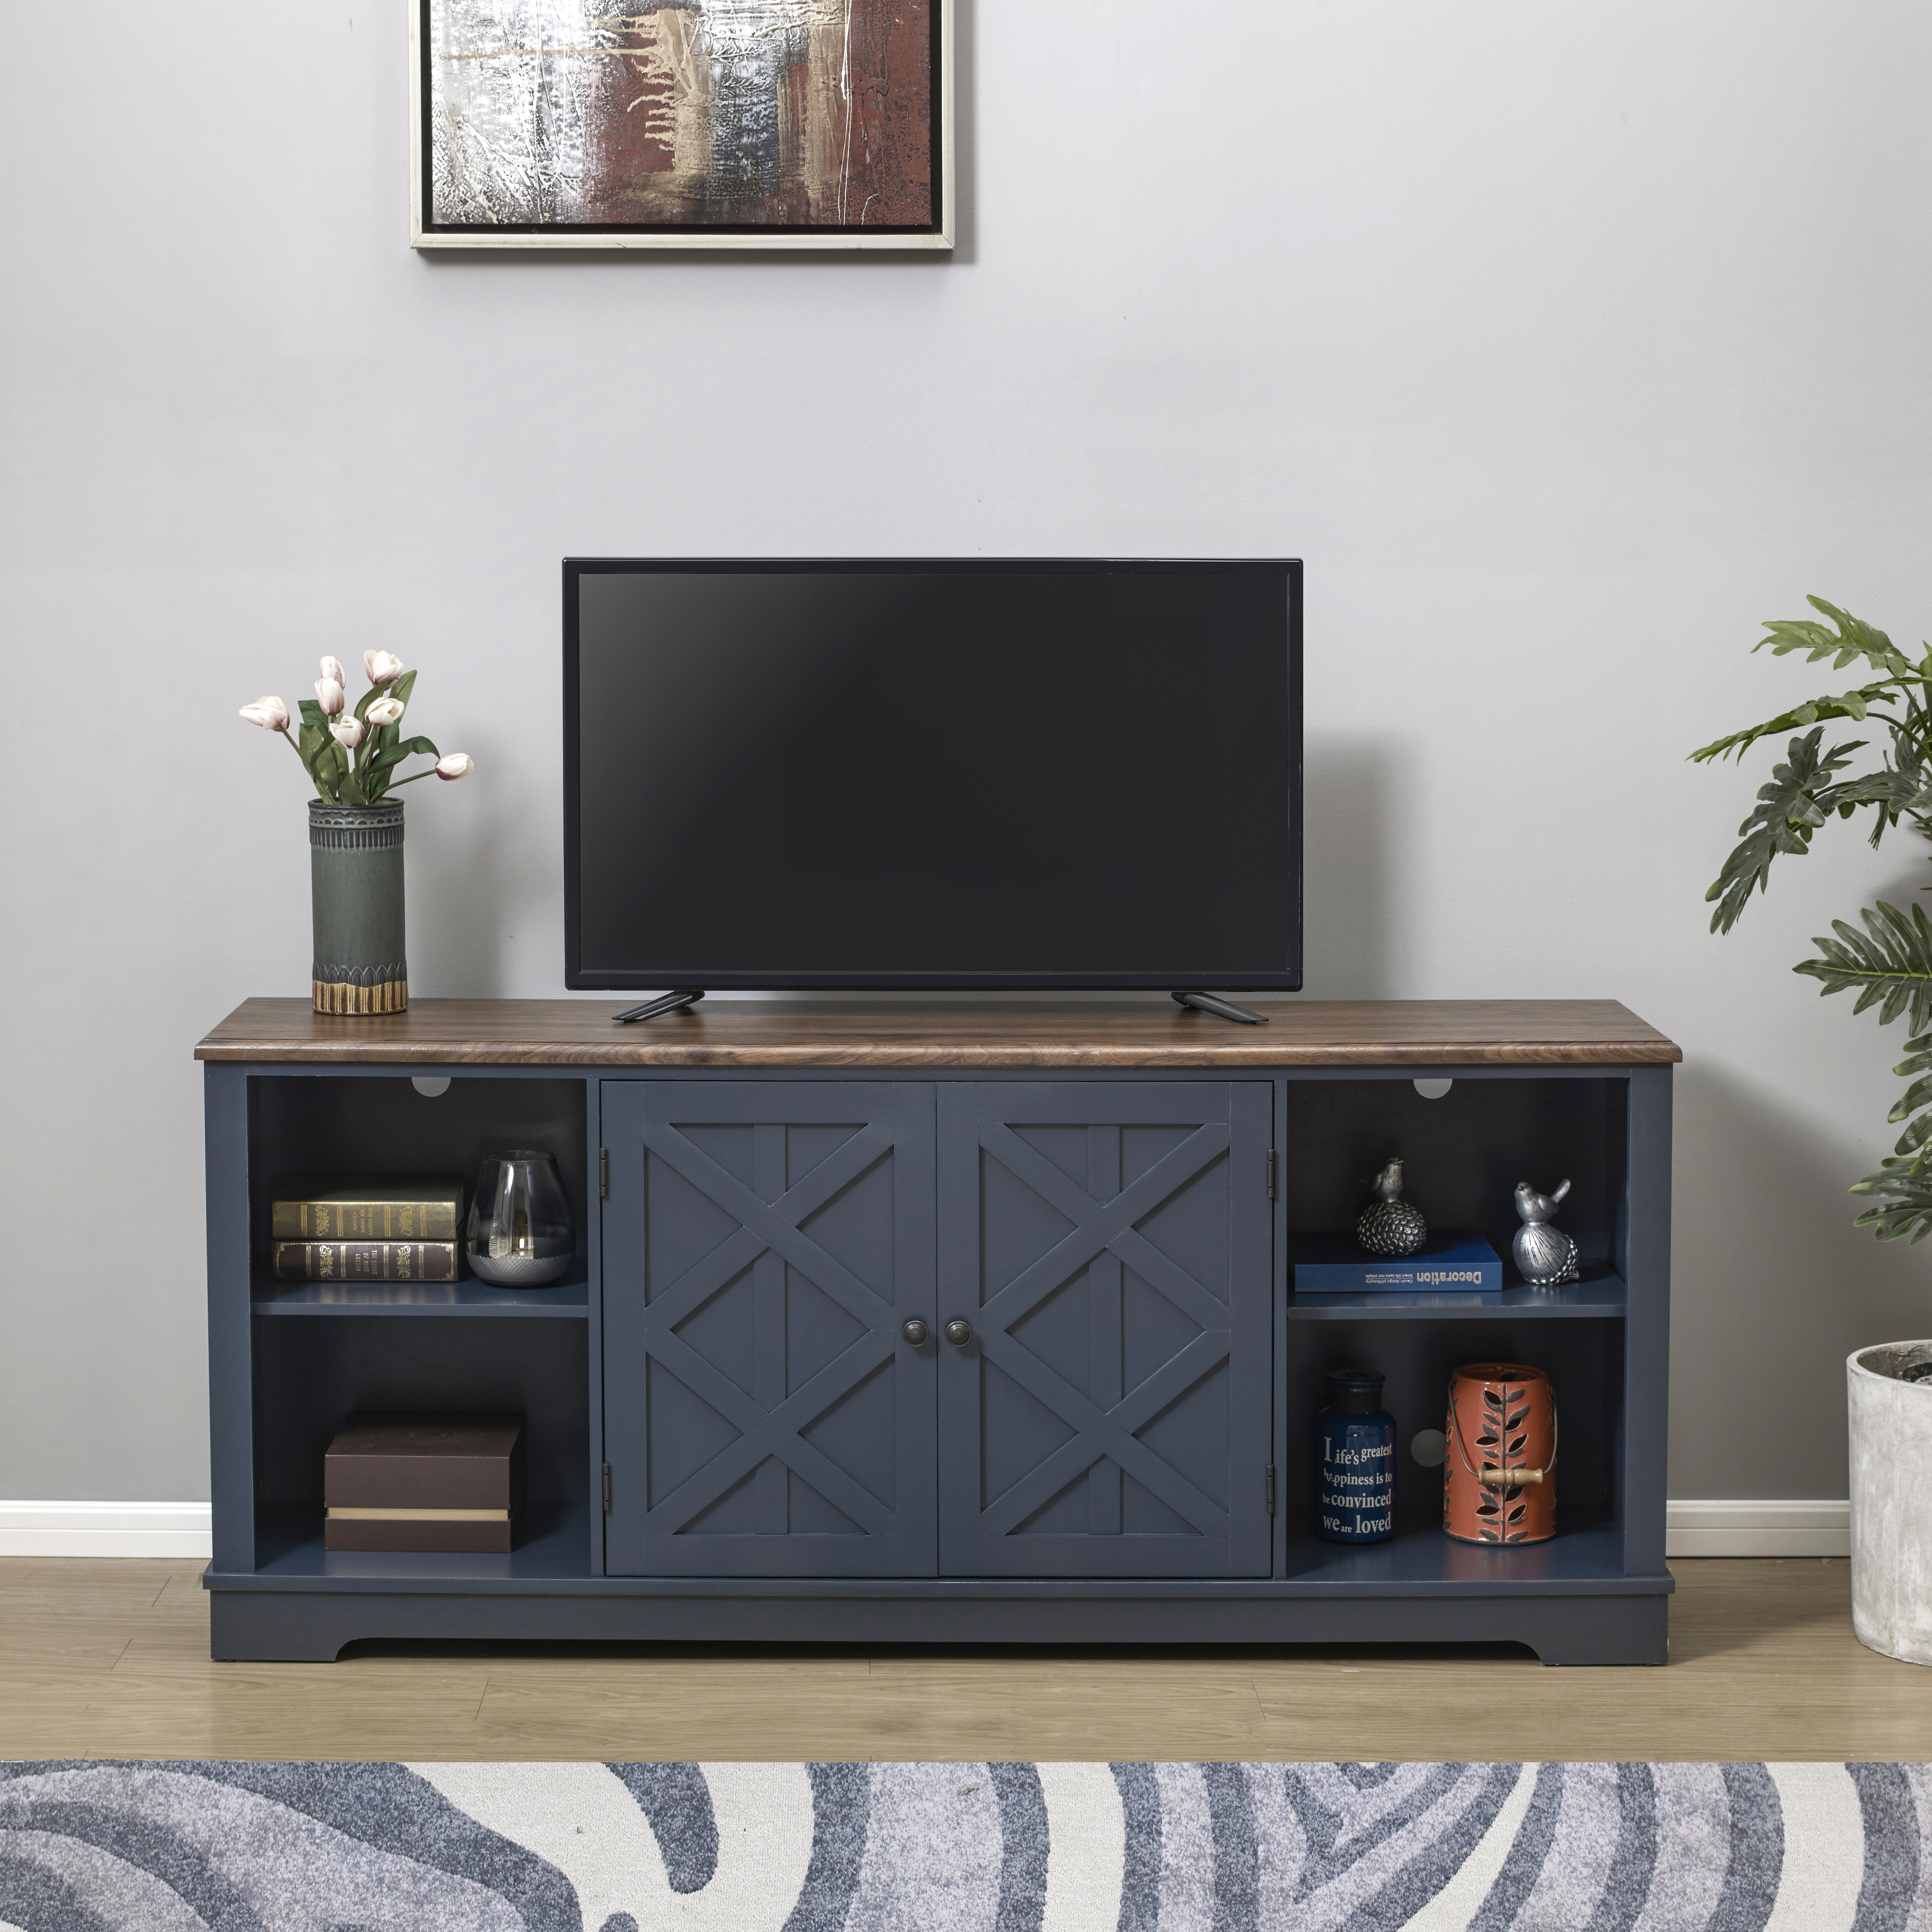 Longshore Tides Clem Tv Stand For Tvs Up To 85 Reviews Wayfair Ca